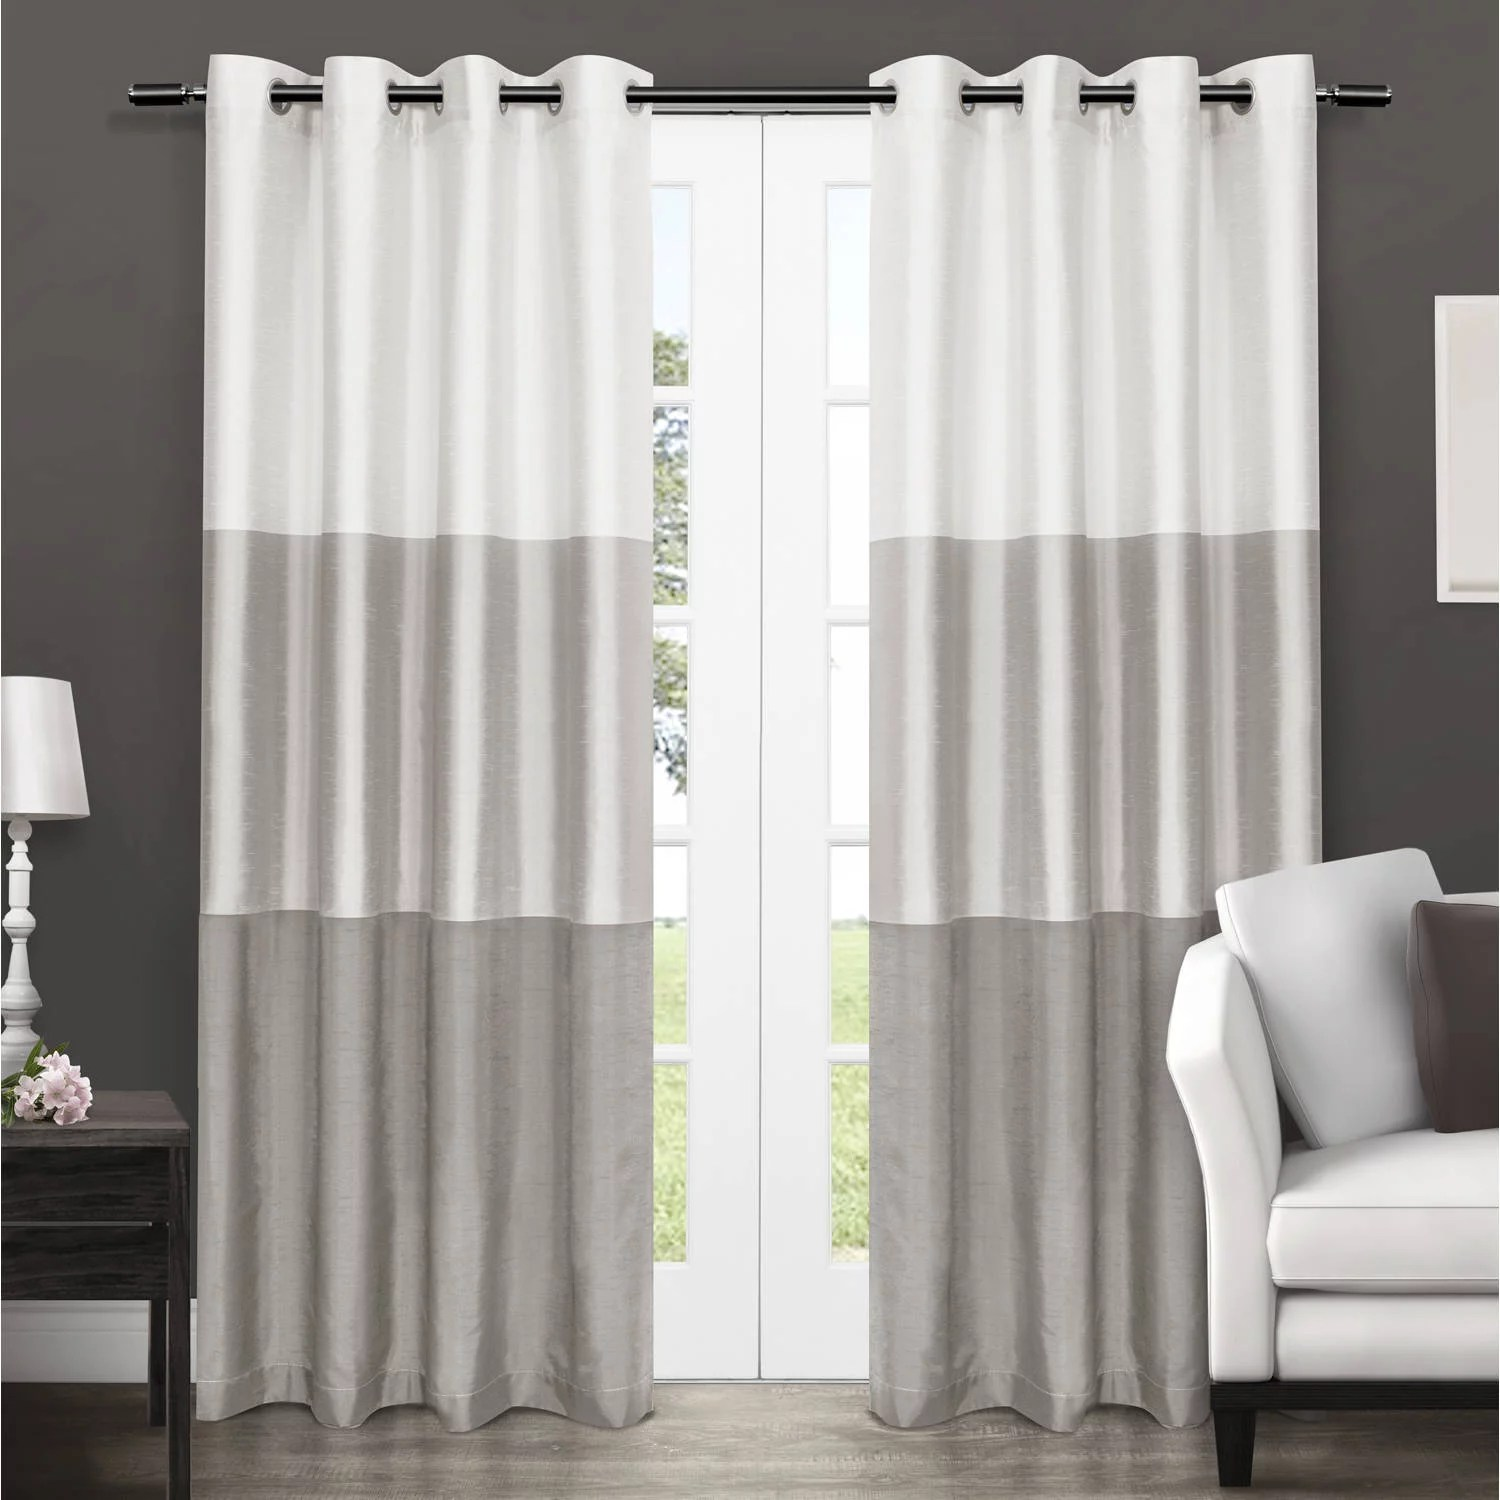 Walmart Thermal Curtains Premiere Thermal Backed Energy Efficient Curtain Panels